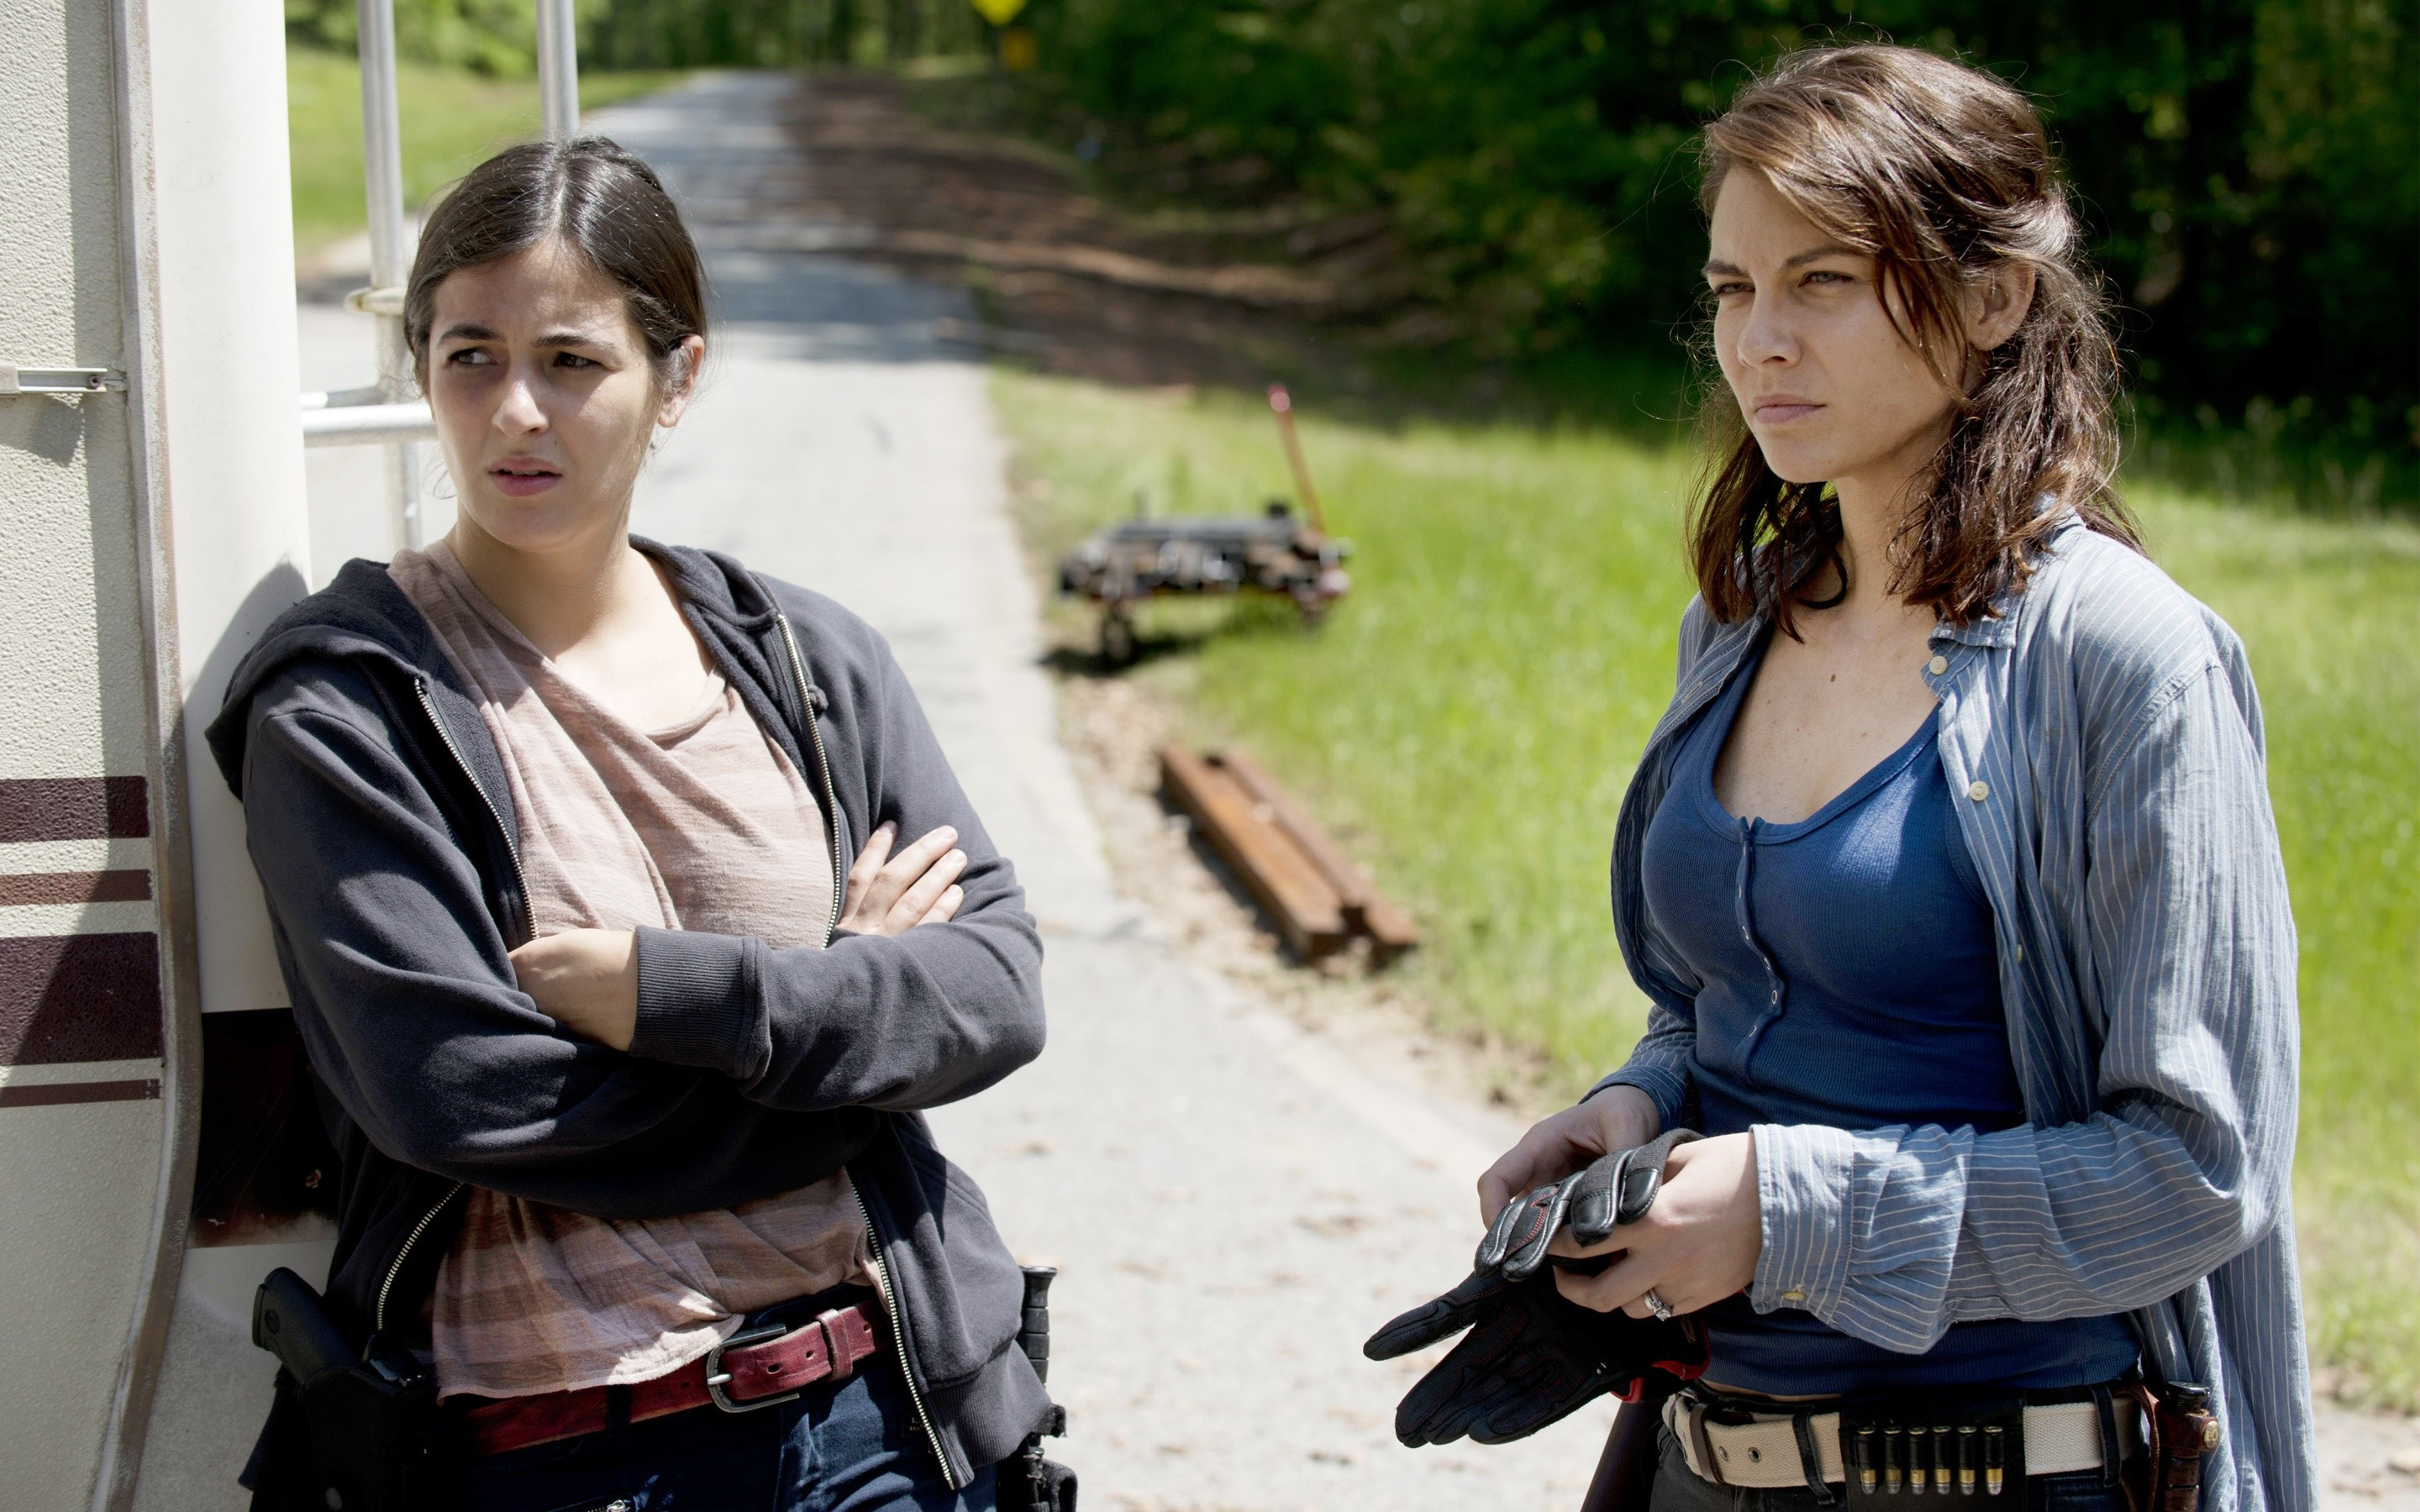 Wallpaper Tara Chambler and Maggie in The walking dead